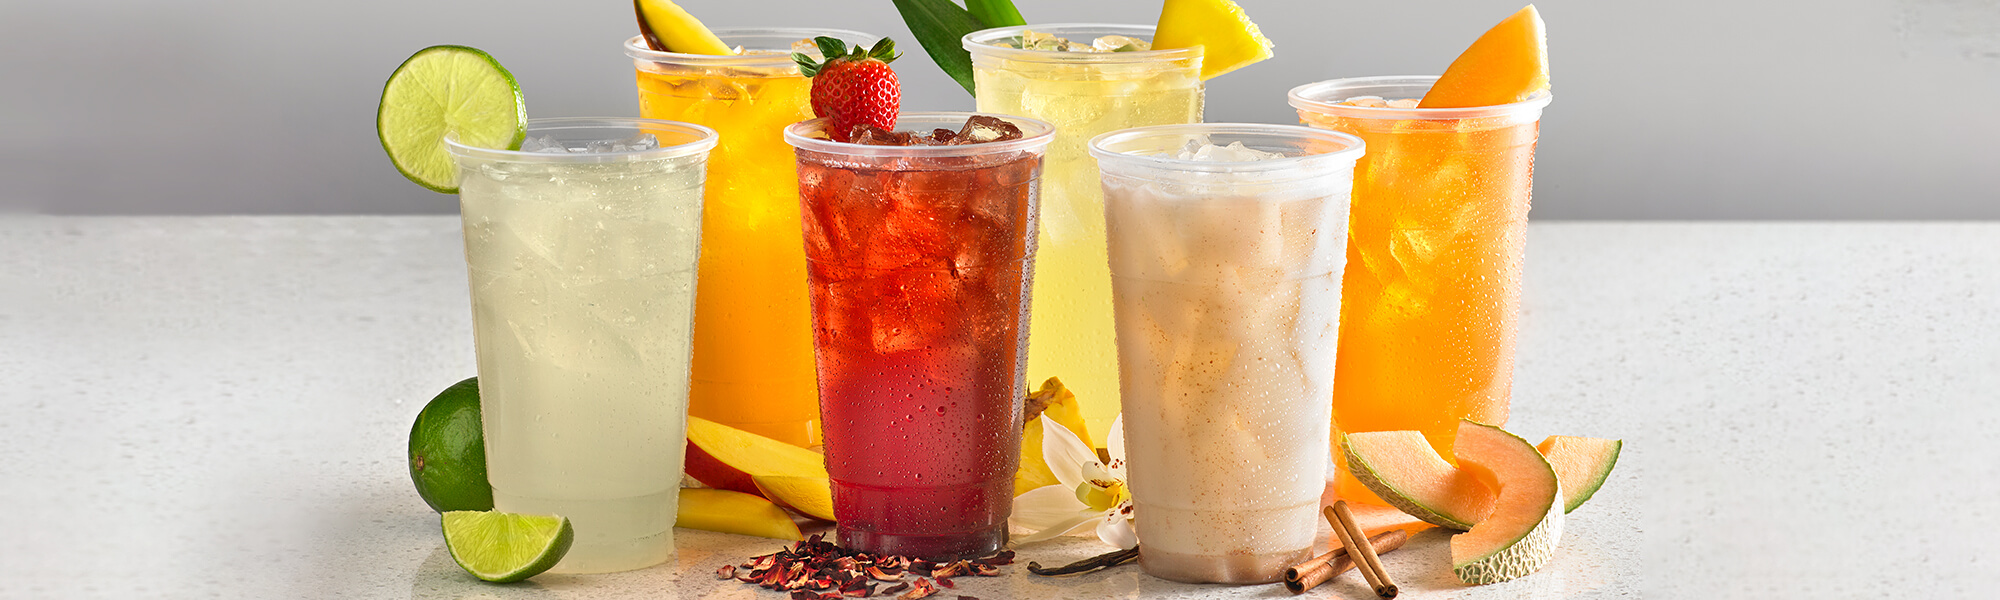 Various Aguas Frescas Drinks